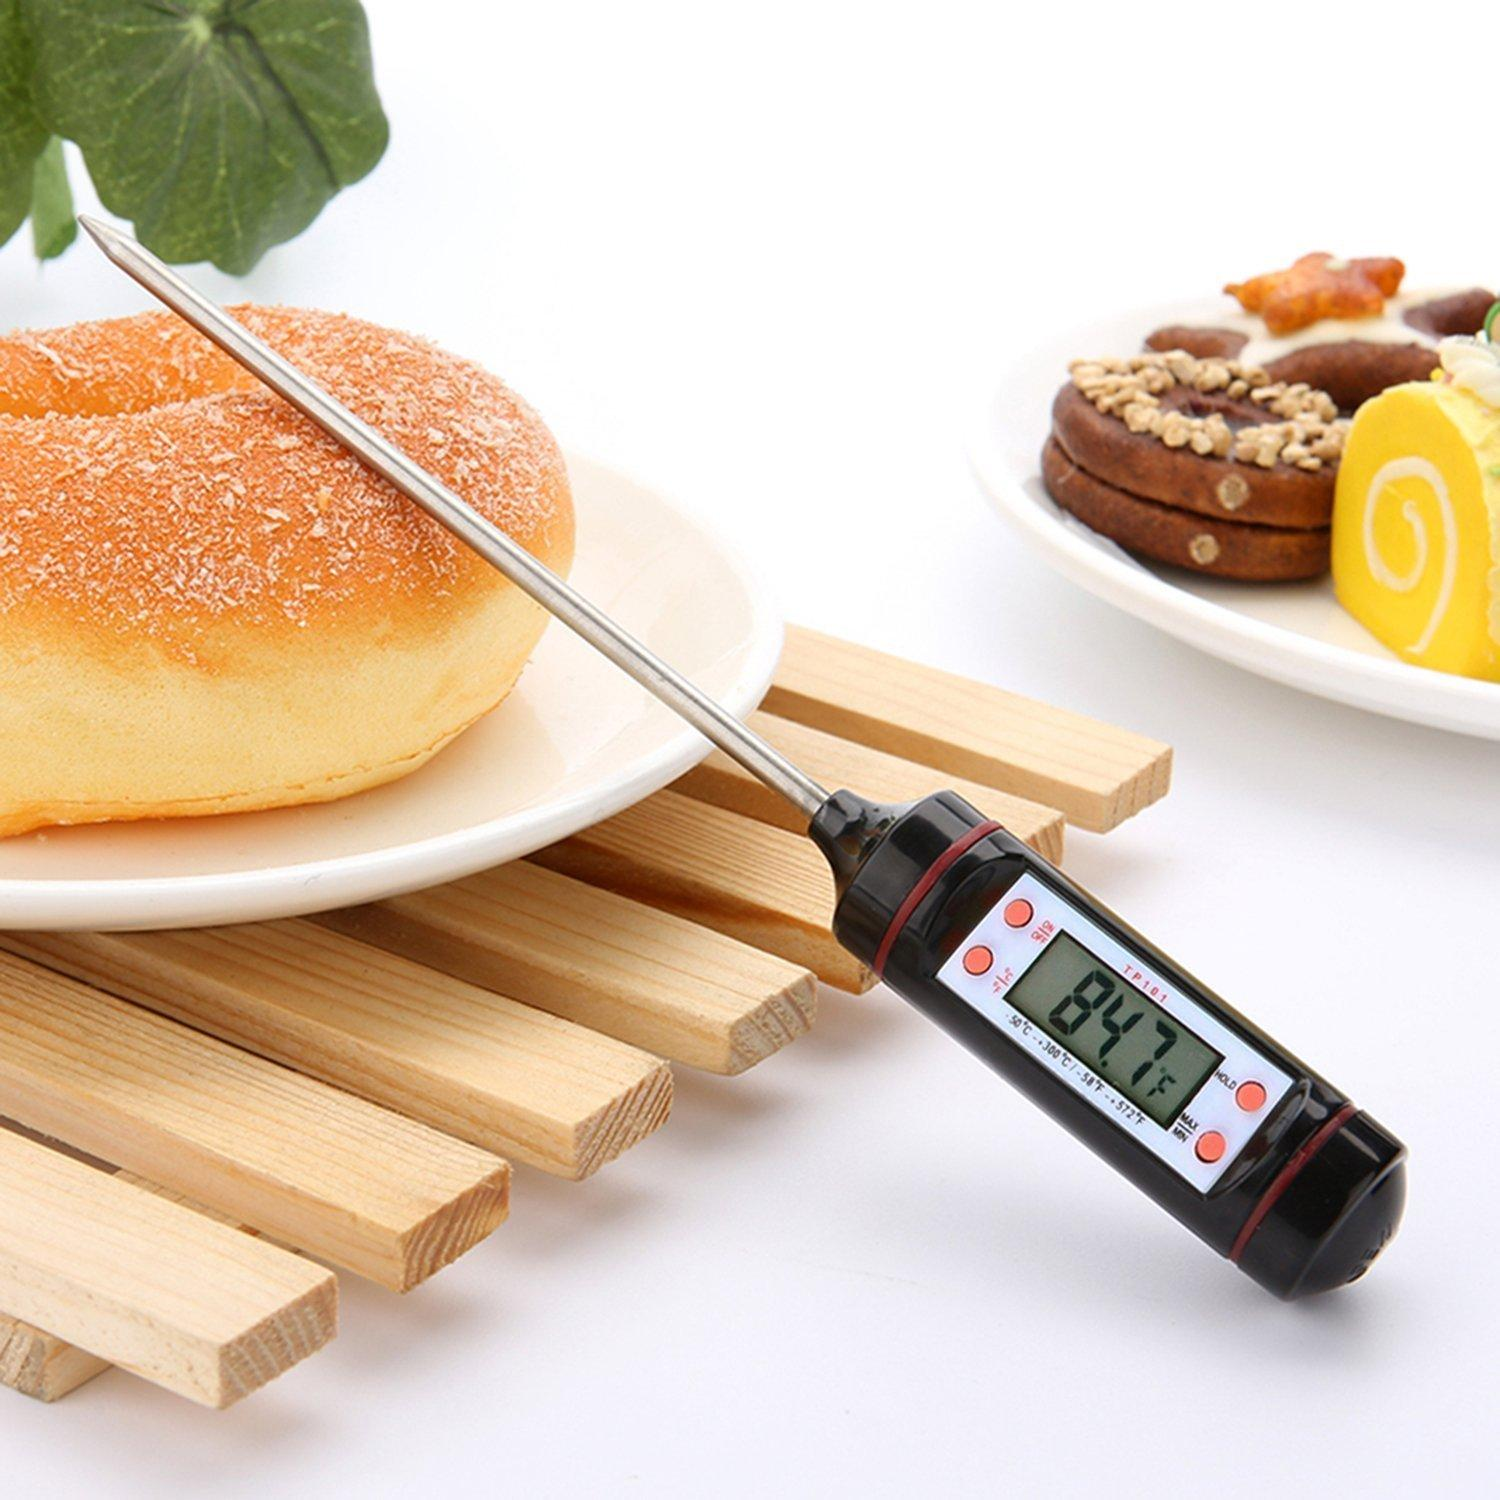 BBQ Digital Cooking Thermometer with LCD Screen and Long Probe, Perfect for Meat, Food, Milk, Grill and Water Measurment Kitchen